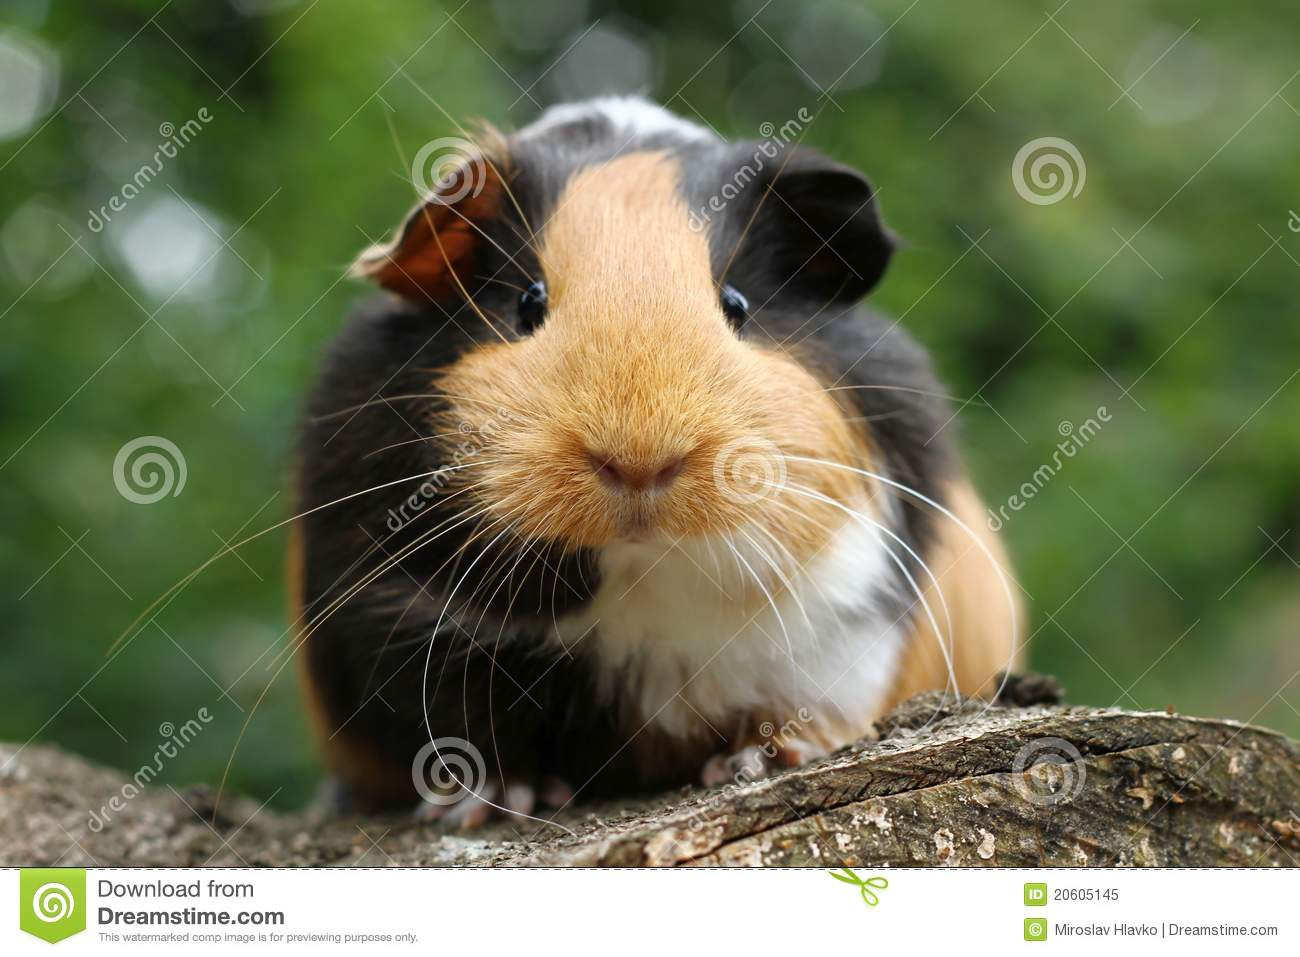 Guinea pig royalty free stock photo image 20605145 for Guinea pig pictures free